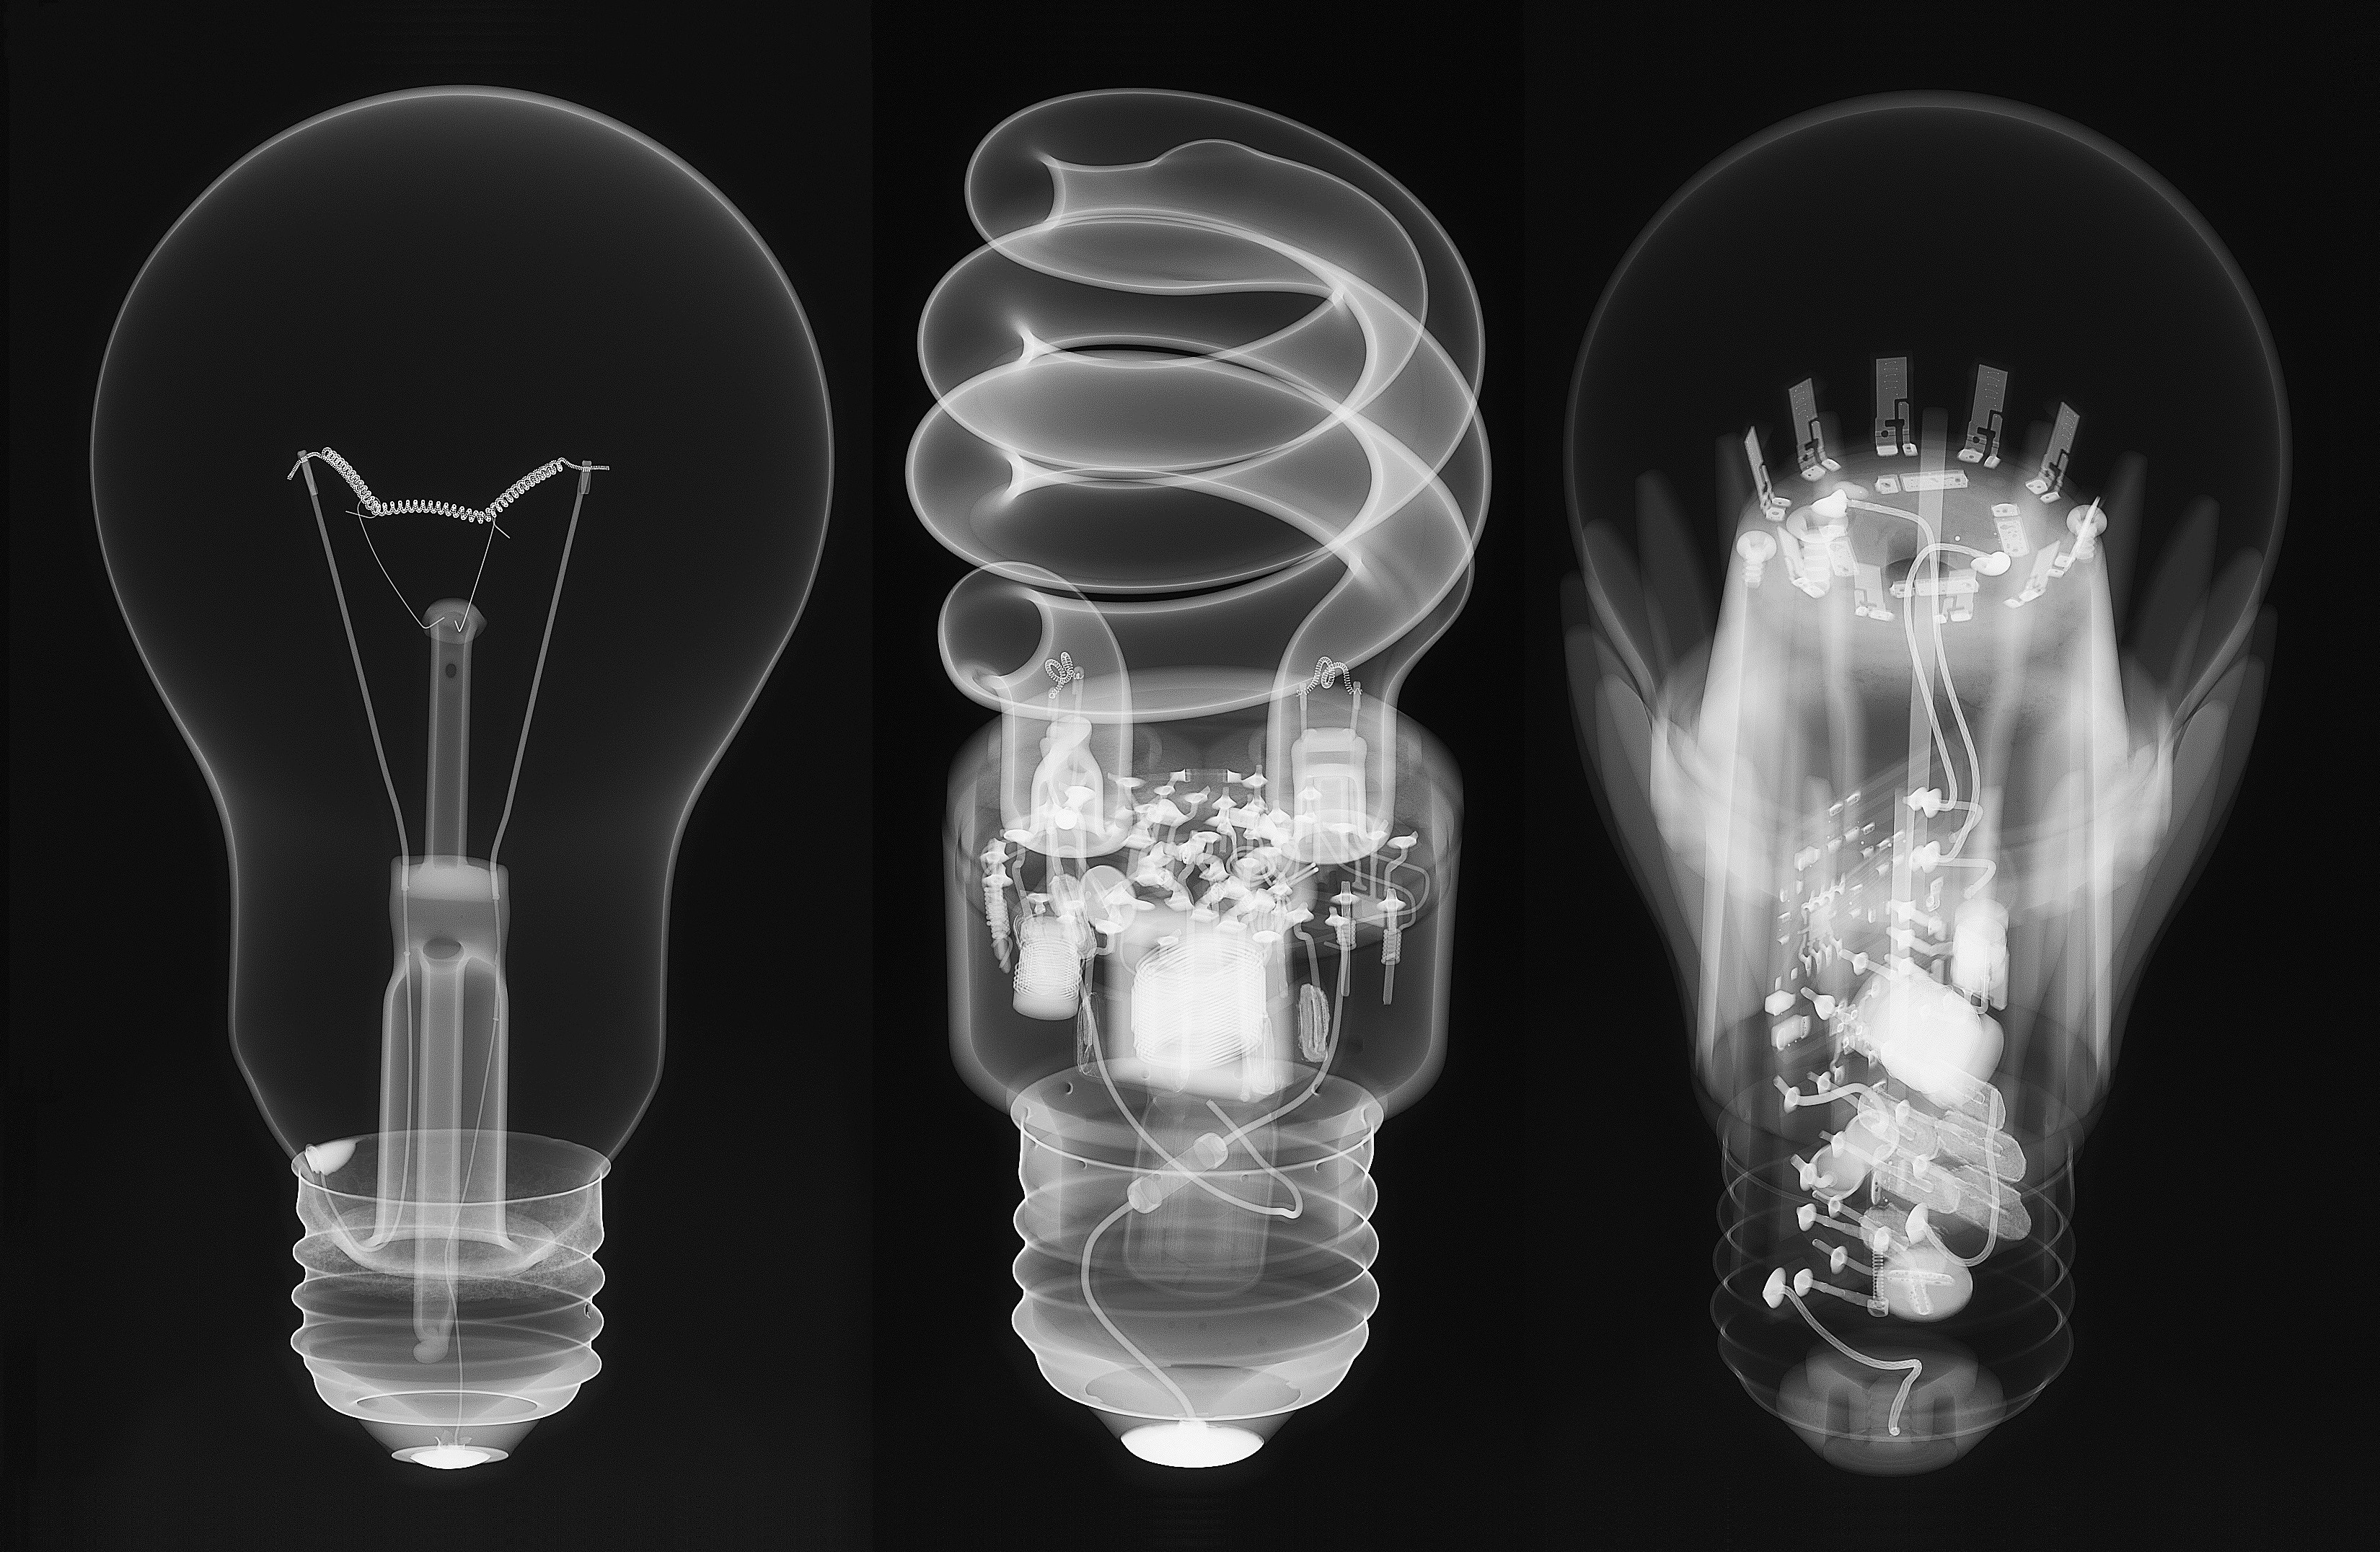 The Evolution Of Electric Light Bulbs: An X-Ray View